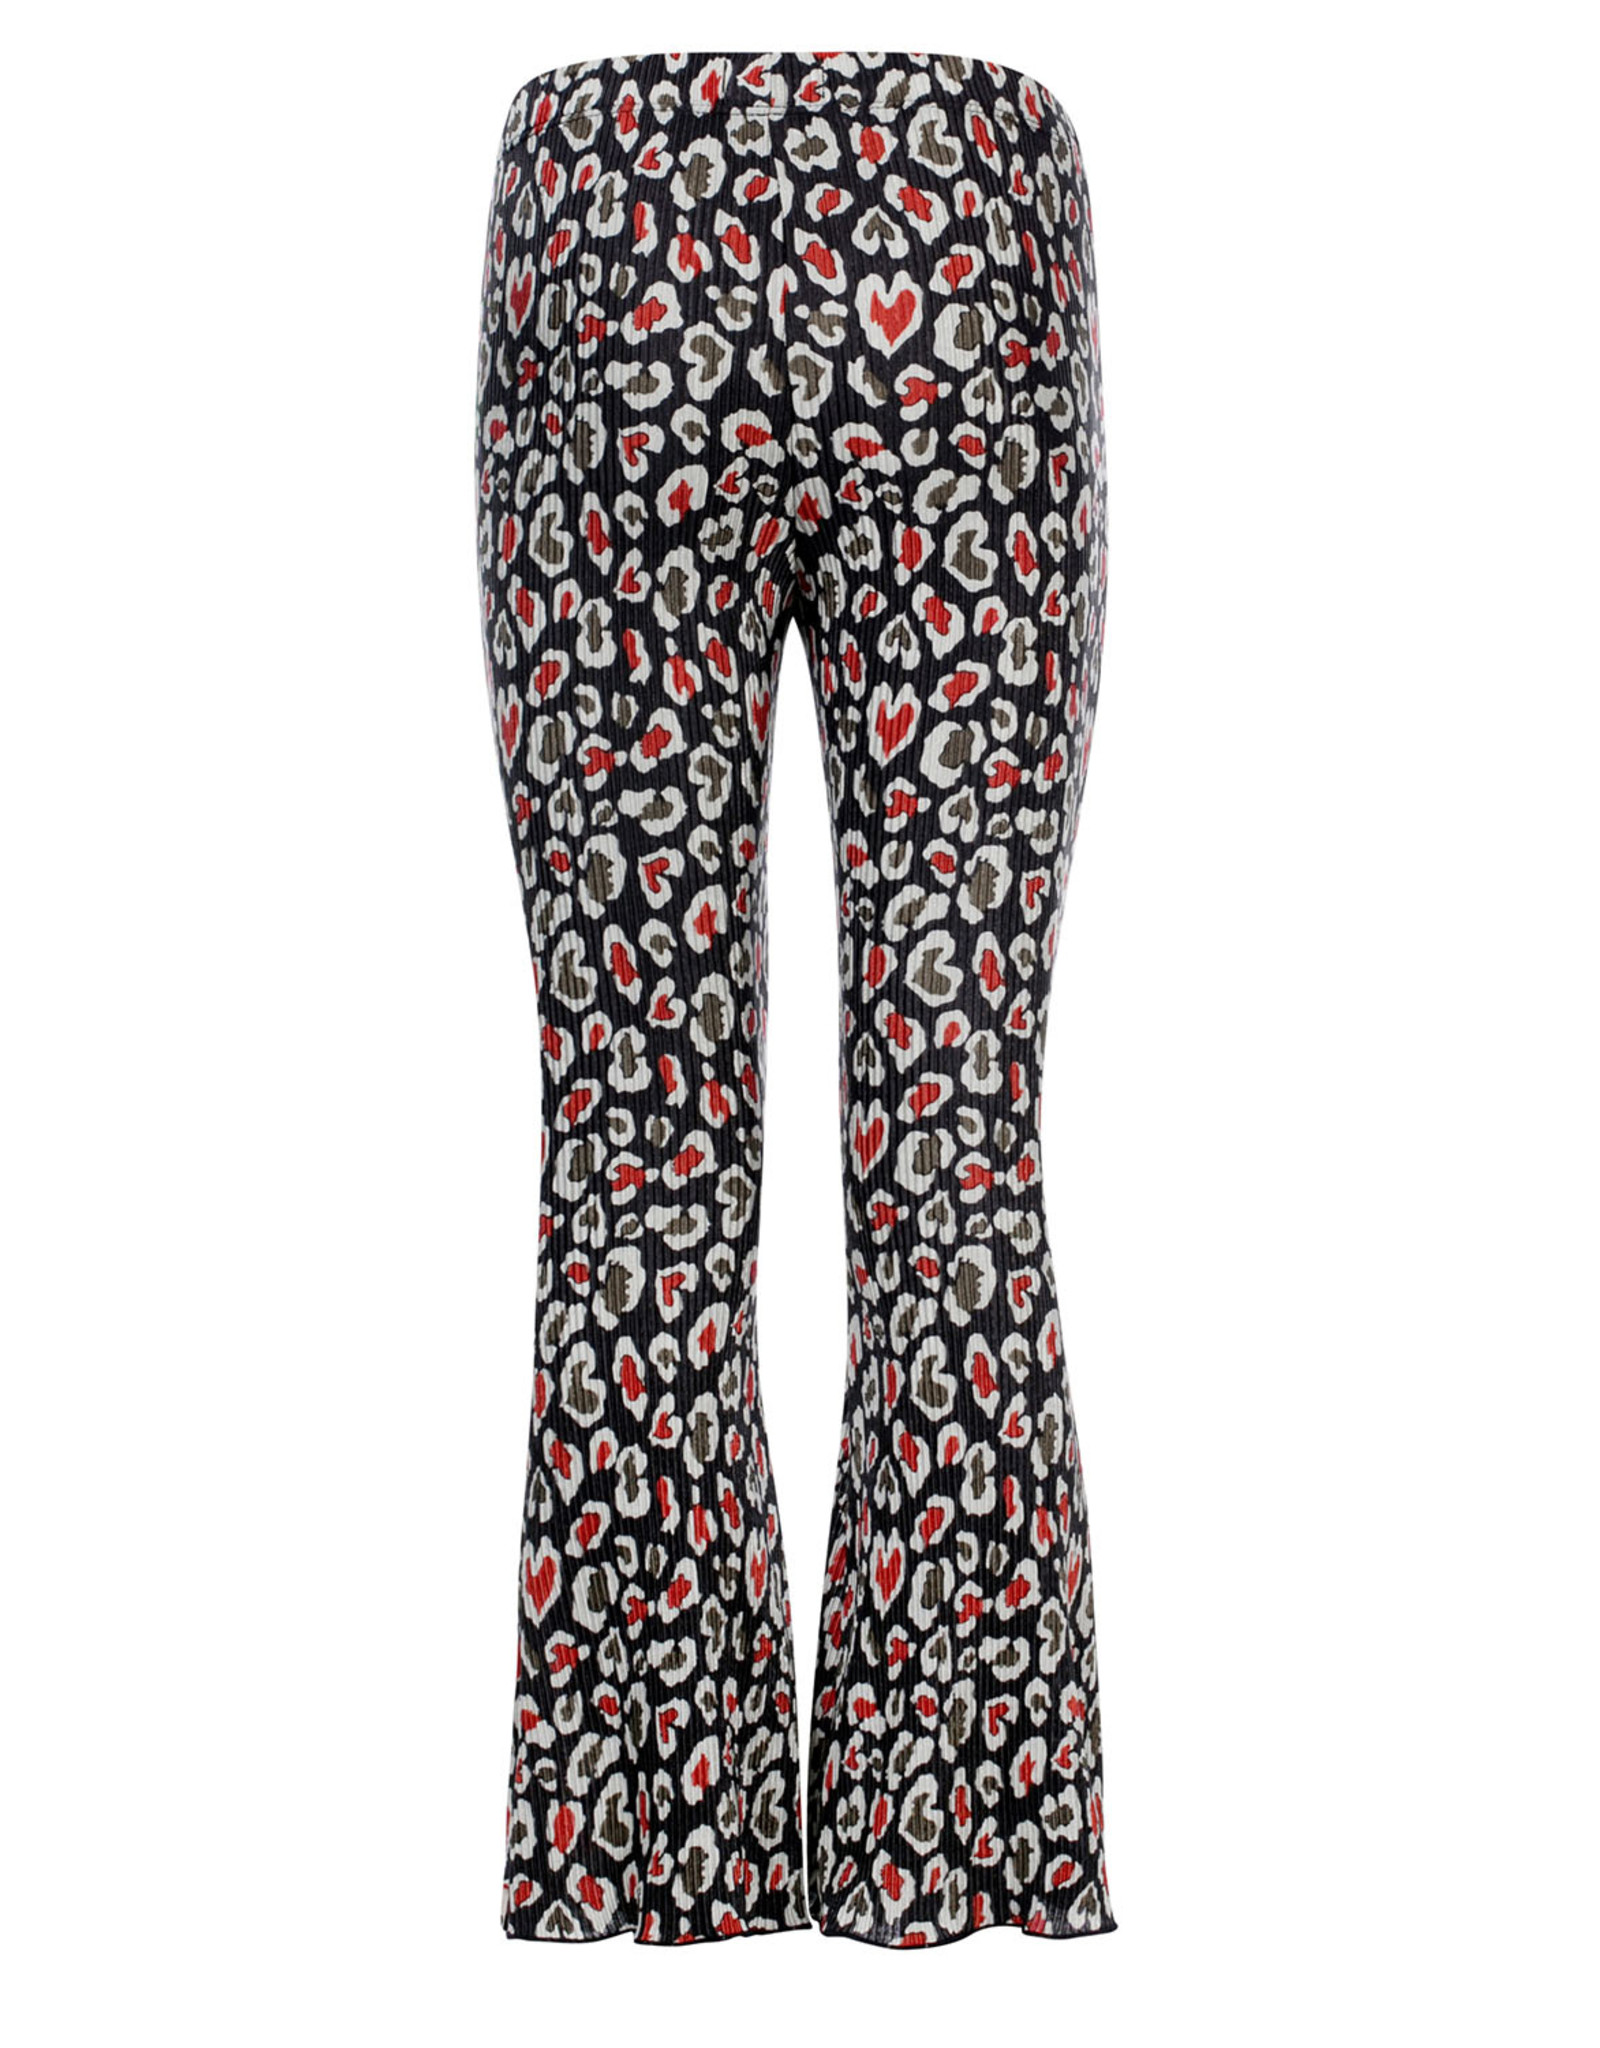 Looxs 10SIXTEEN 10Sixteen crinkle Flare pants fancy